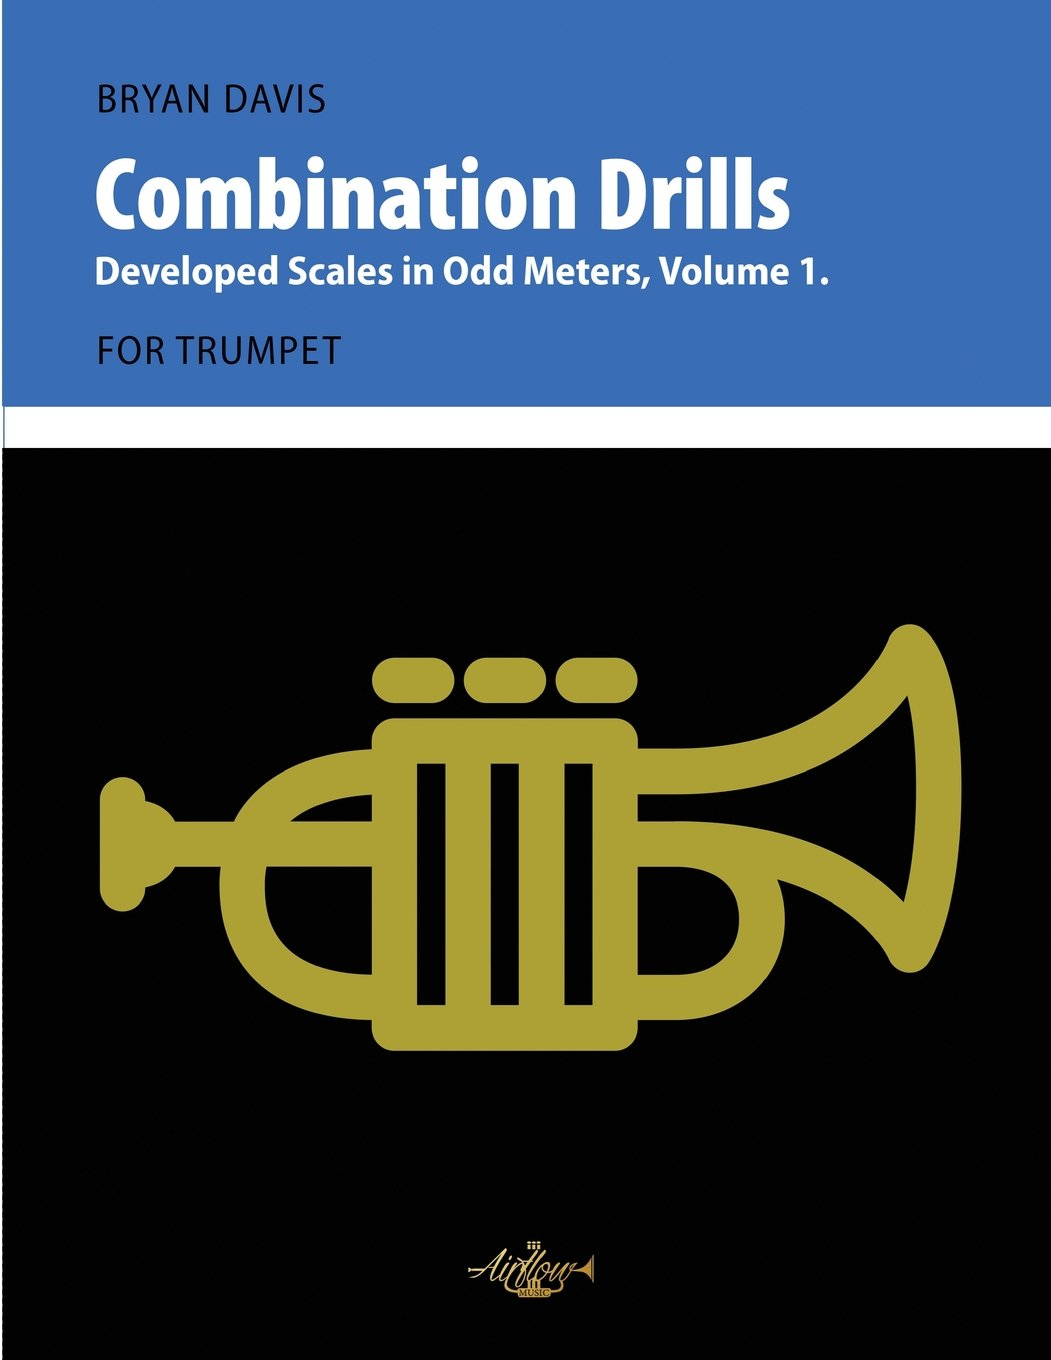 Combination Drills: Developed Scales in Odd Meters, Volume 1. For Trumpet.